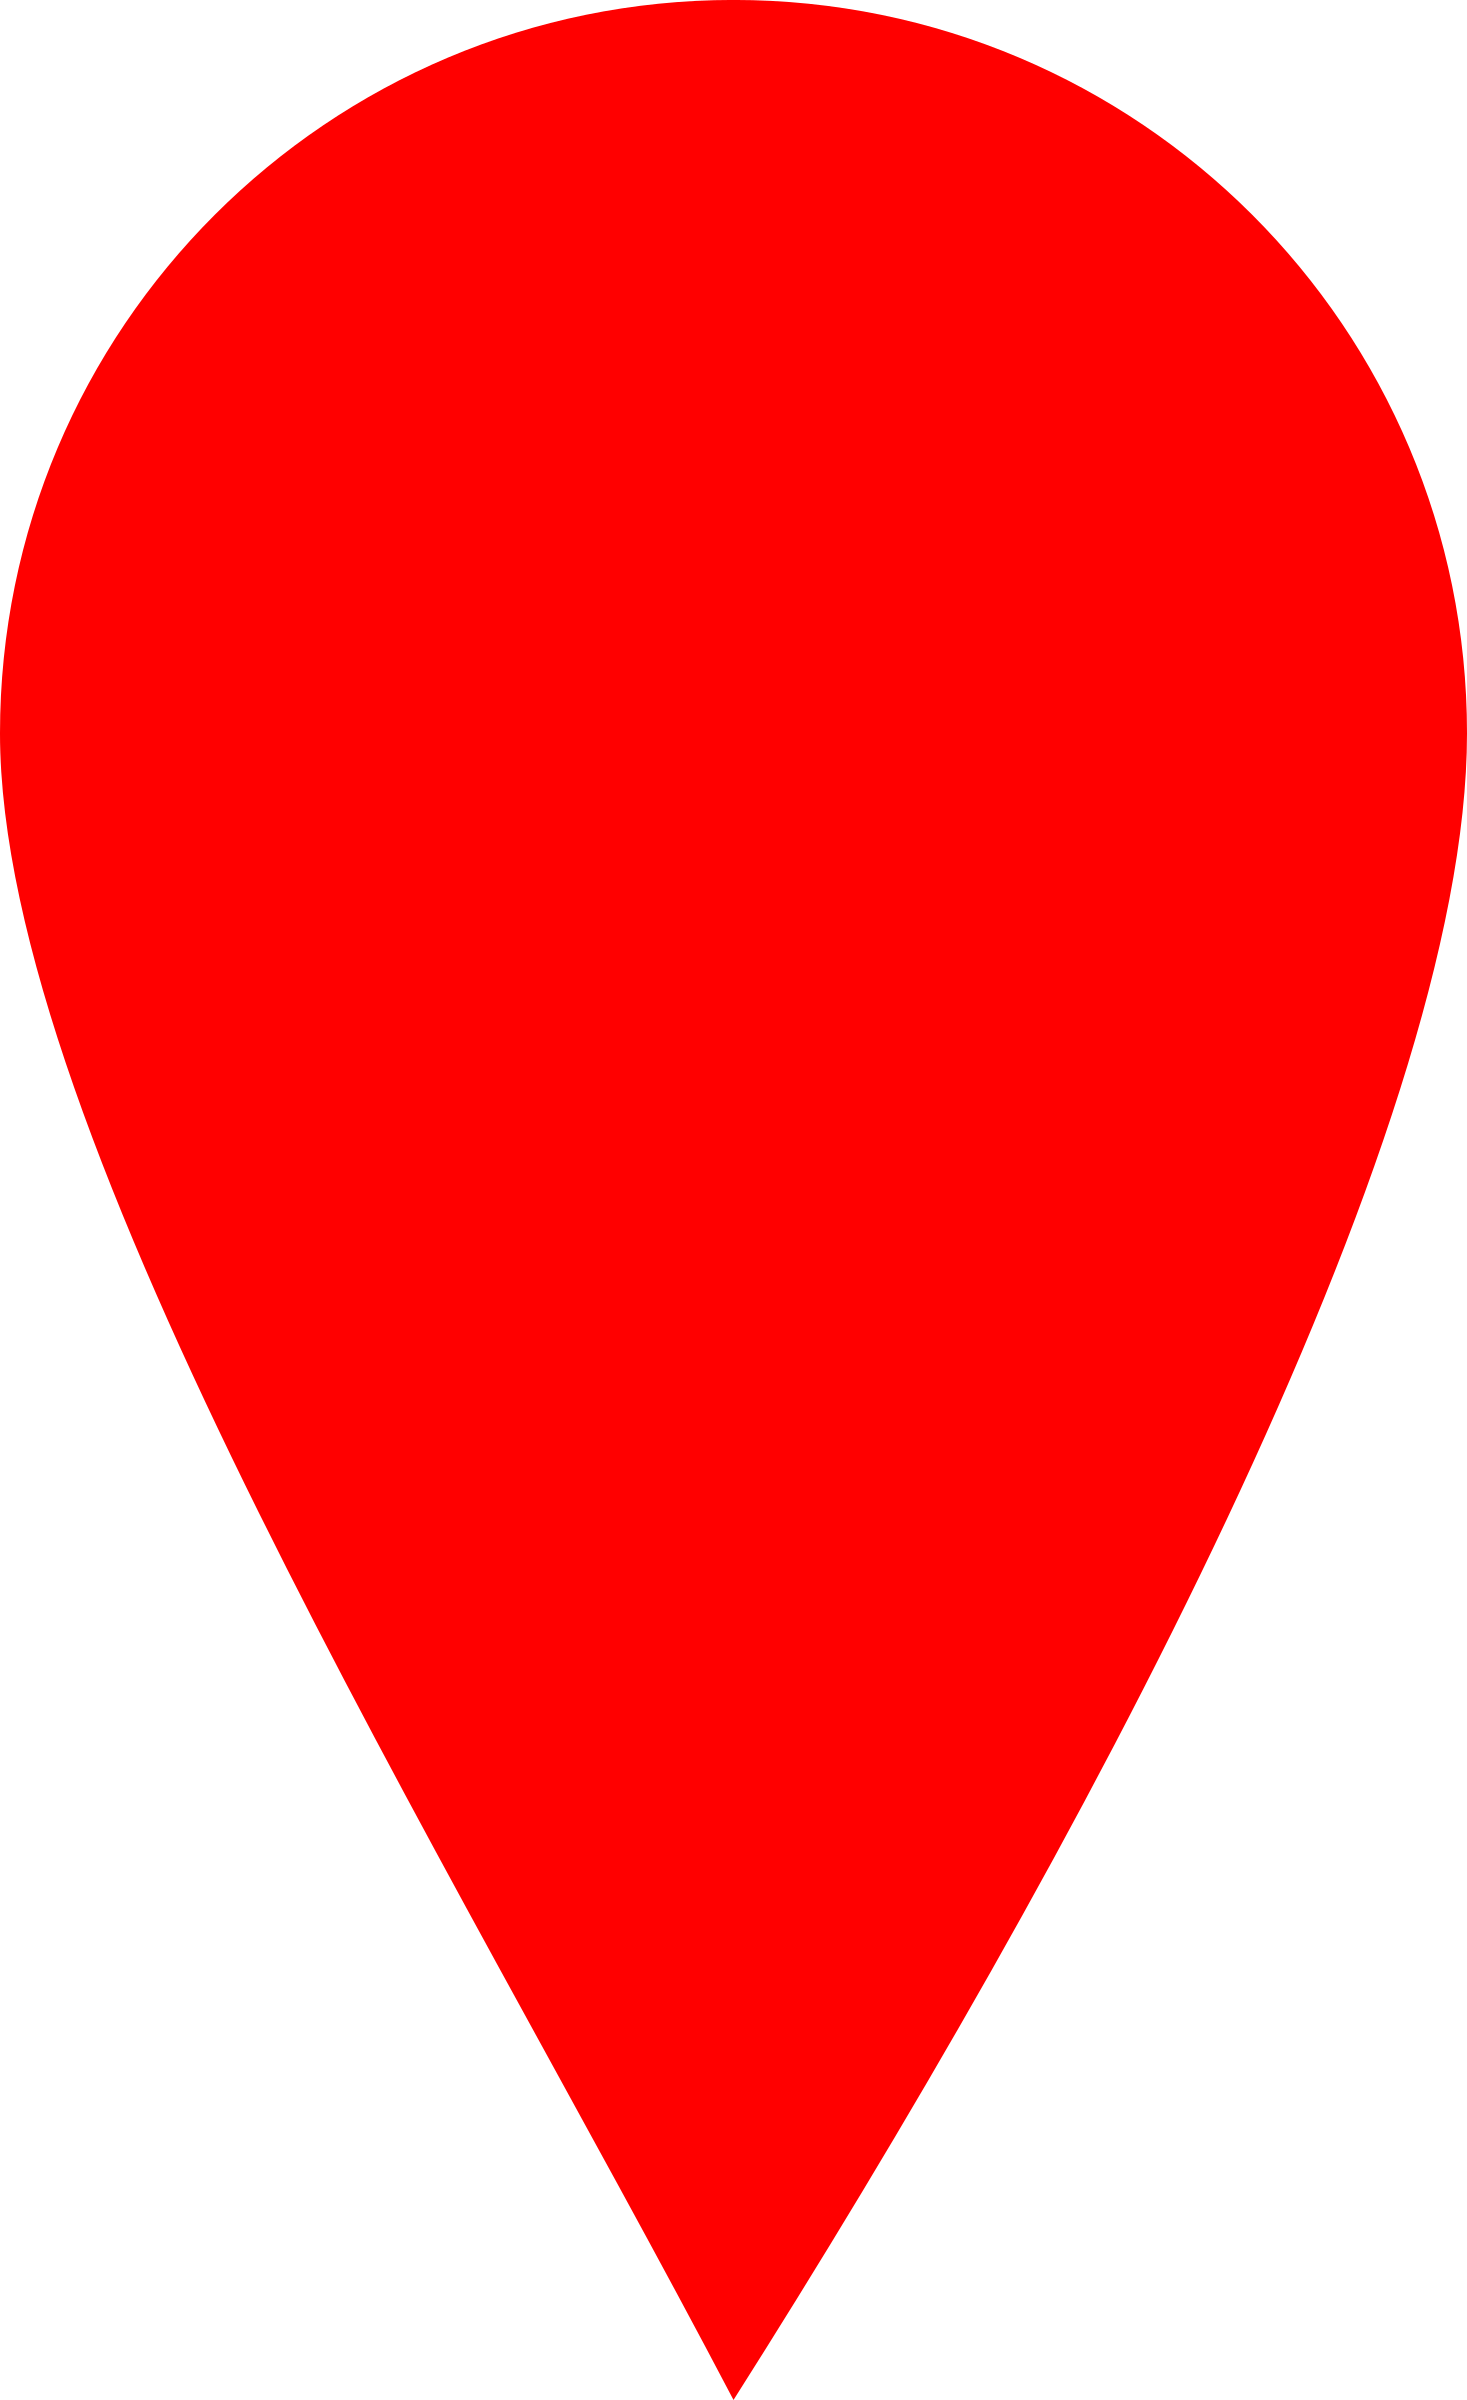 Svg marker map. Red locator icons png